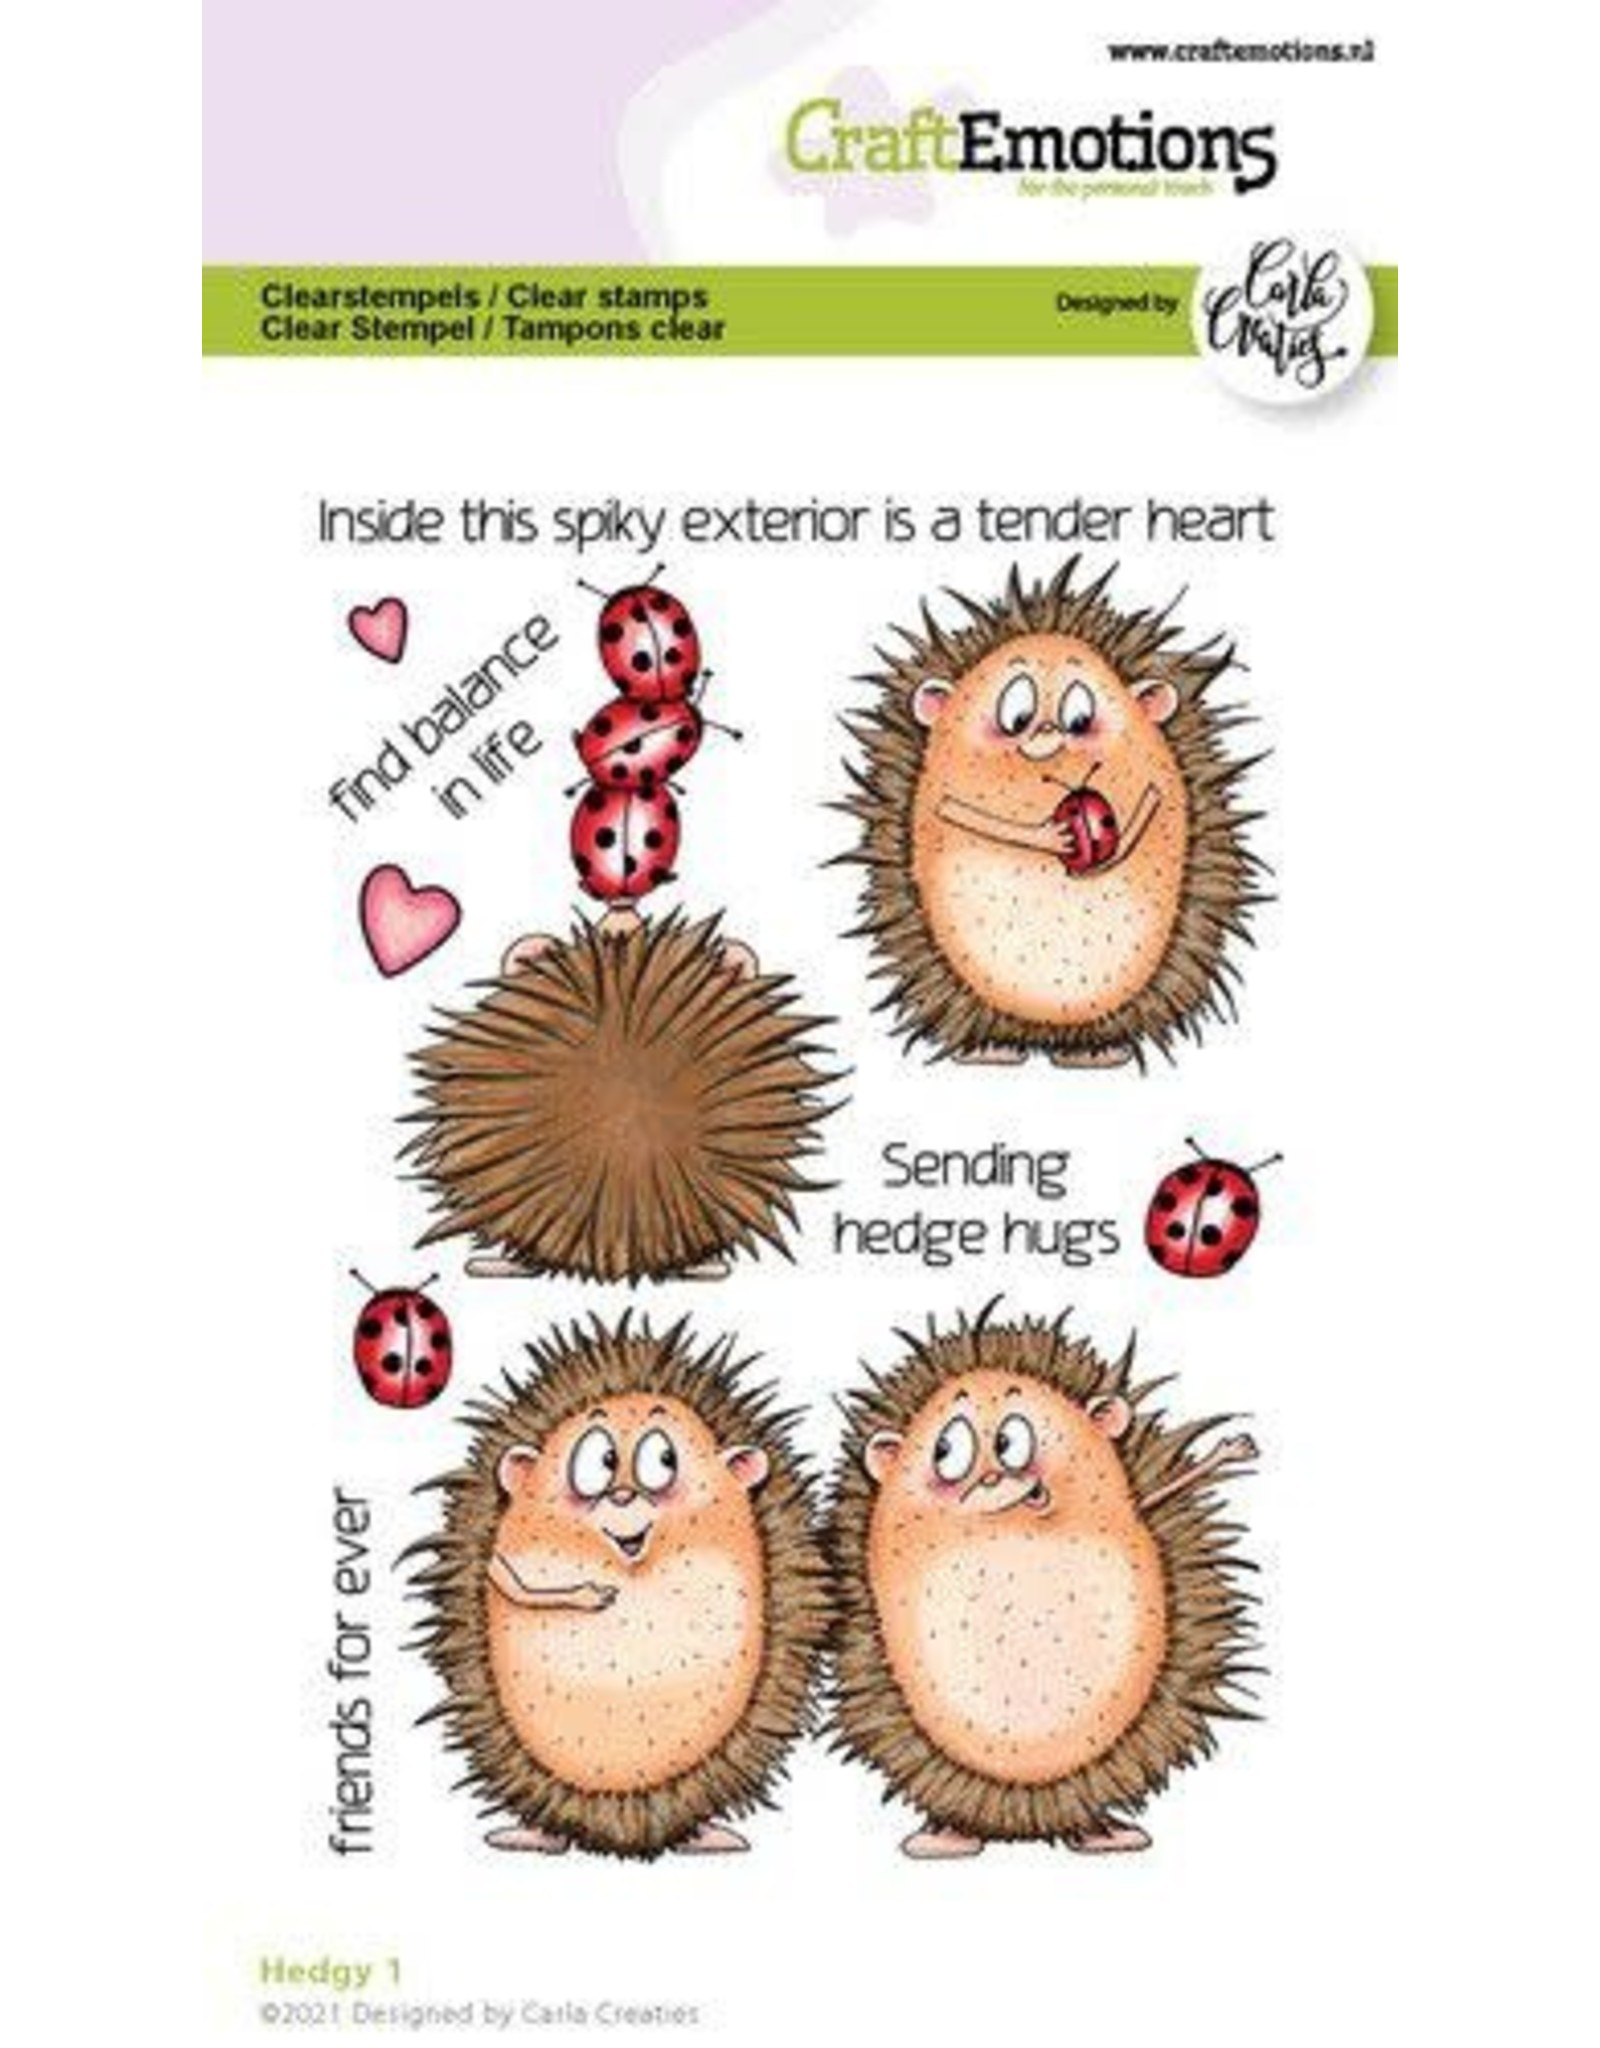 Craft Emotions CraftEmotions clearstamps A6 - Hedgy 1 (Eng) Carla Creaties